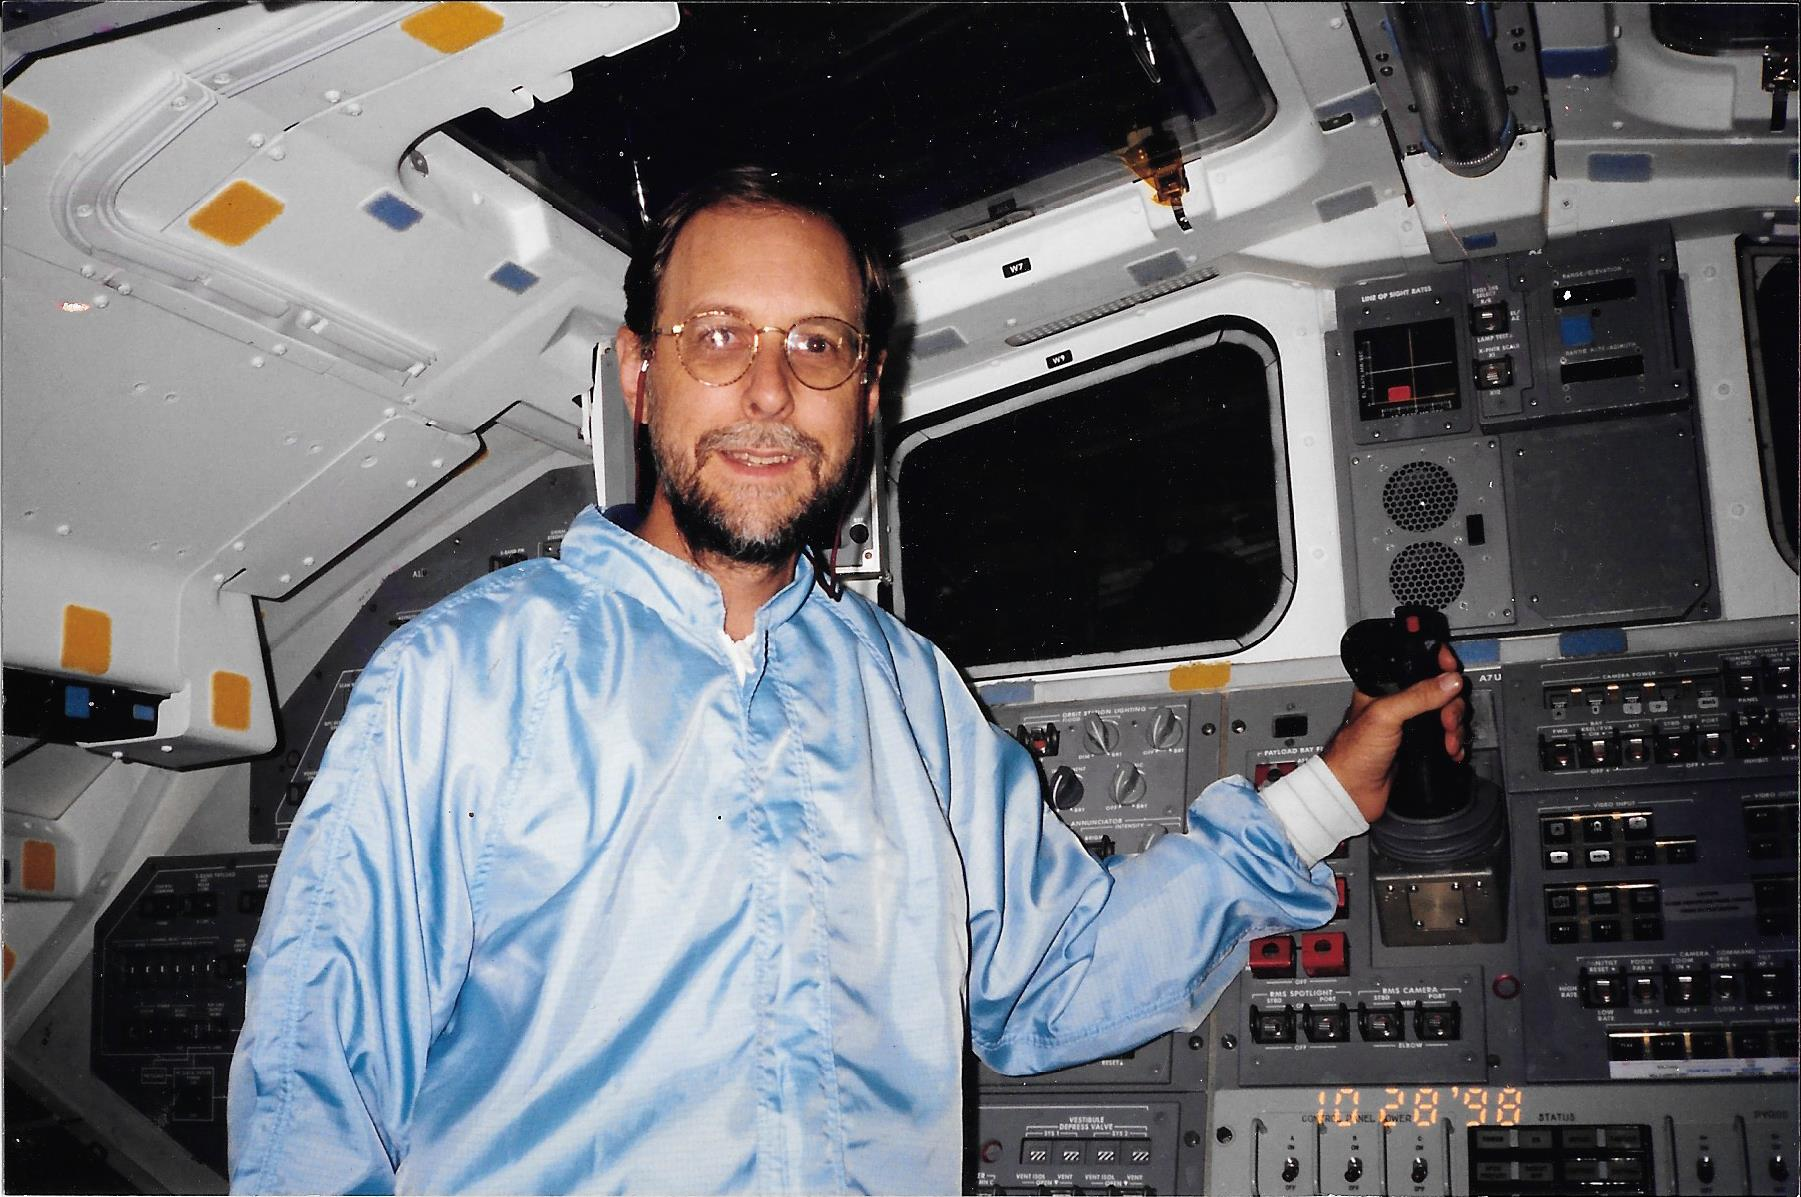 On the flight deck of the Orbiter Atlantis, in a rare shot without an